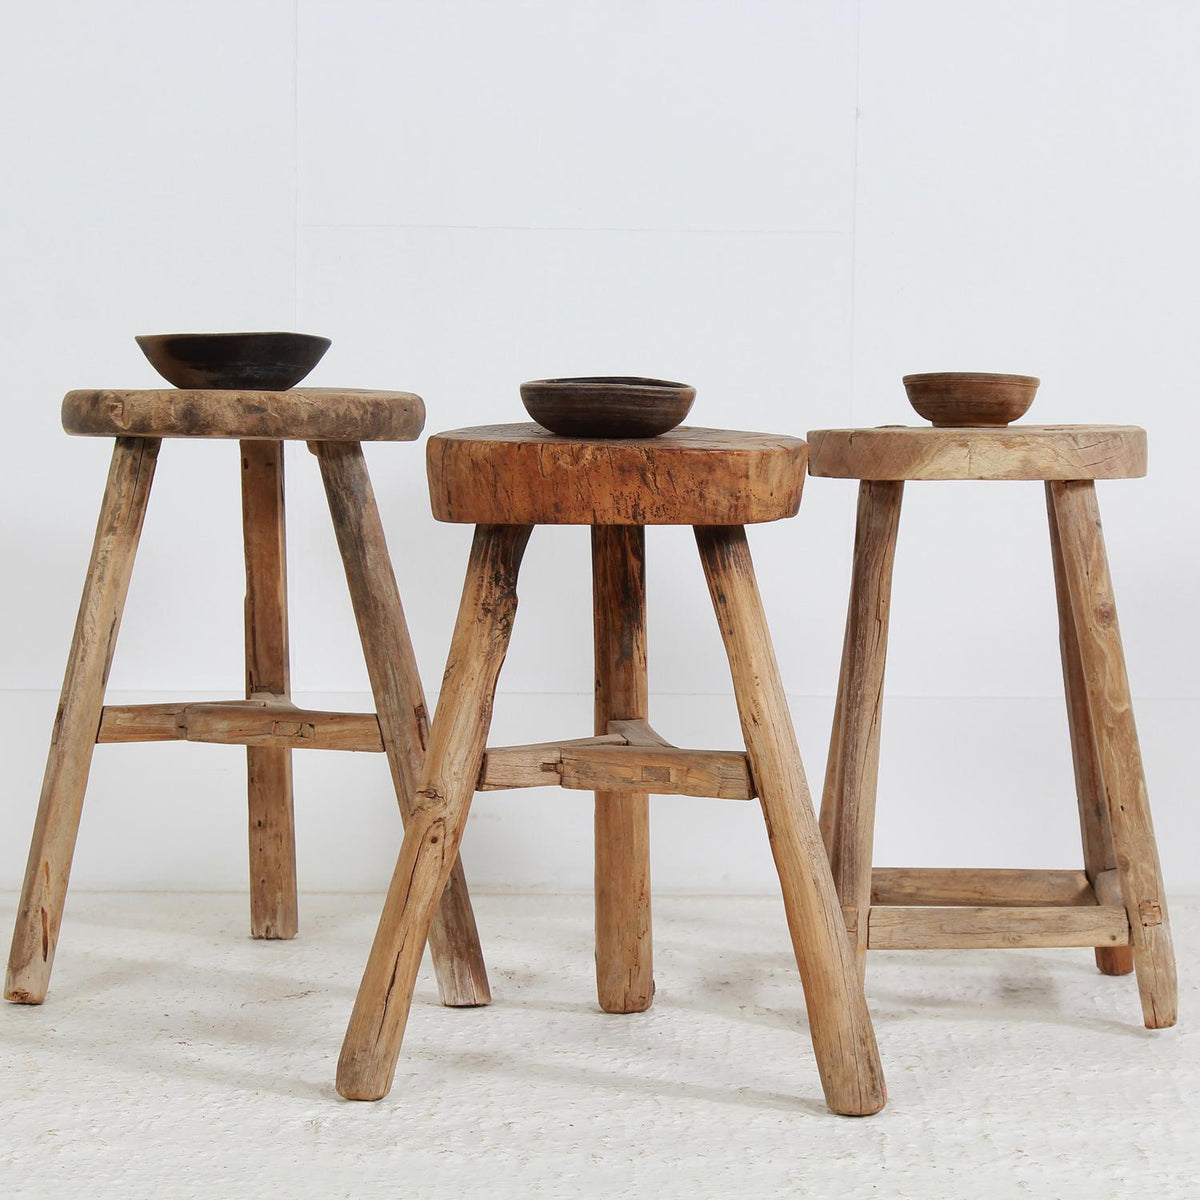 Collection of Three Rustic Chinese Workers Stools